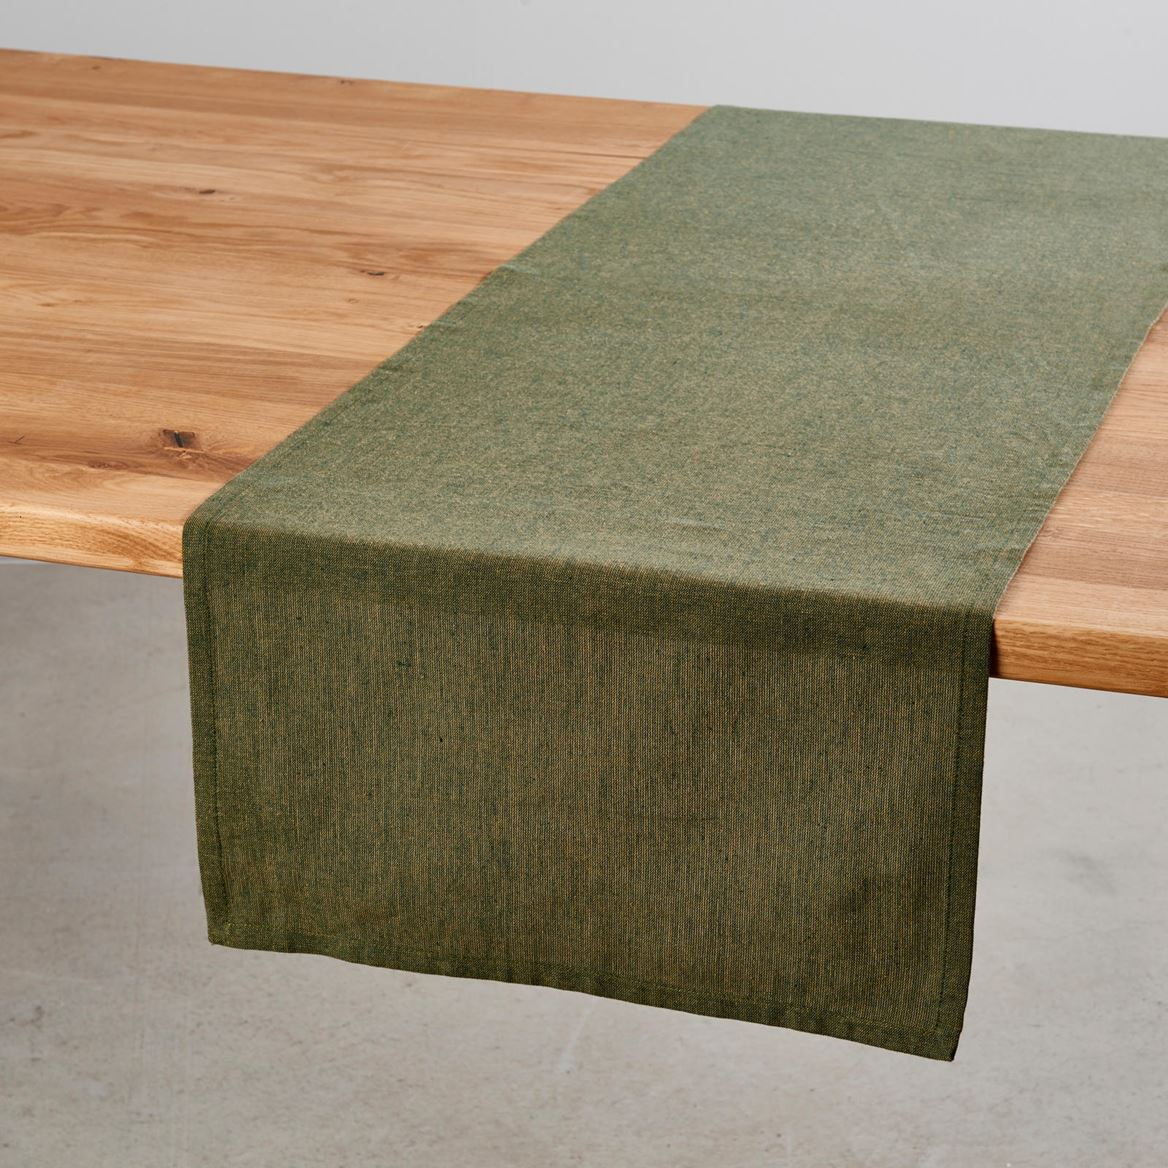 chambray chemin de table vert gazon produits feelgood. Black Bedroom Furniture Sets. Home Design Ideas